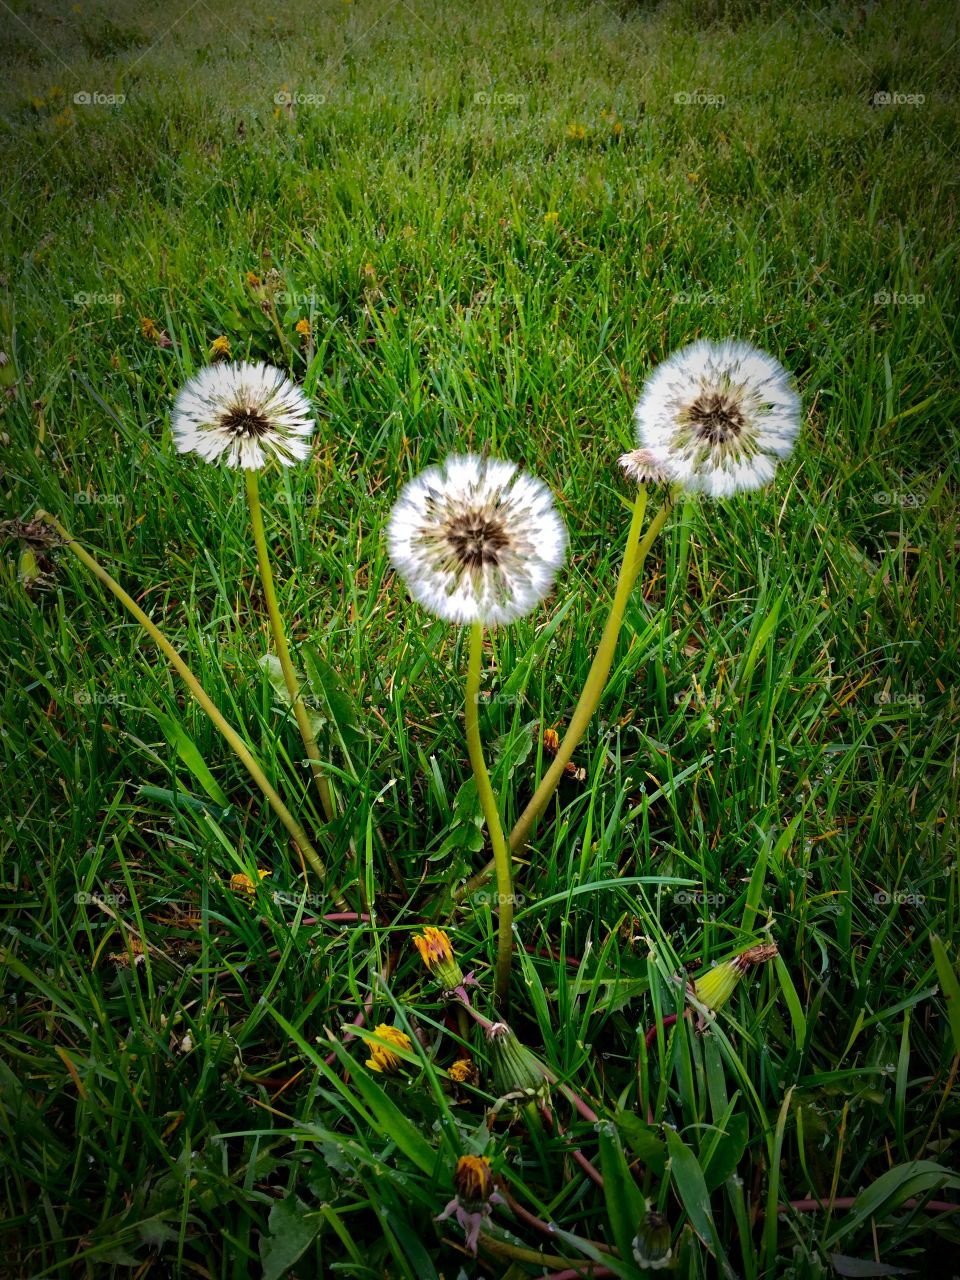 Dandelions Can Be Pretty Too